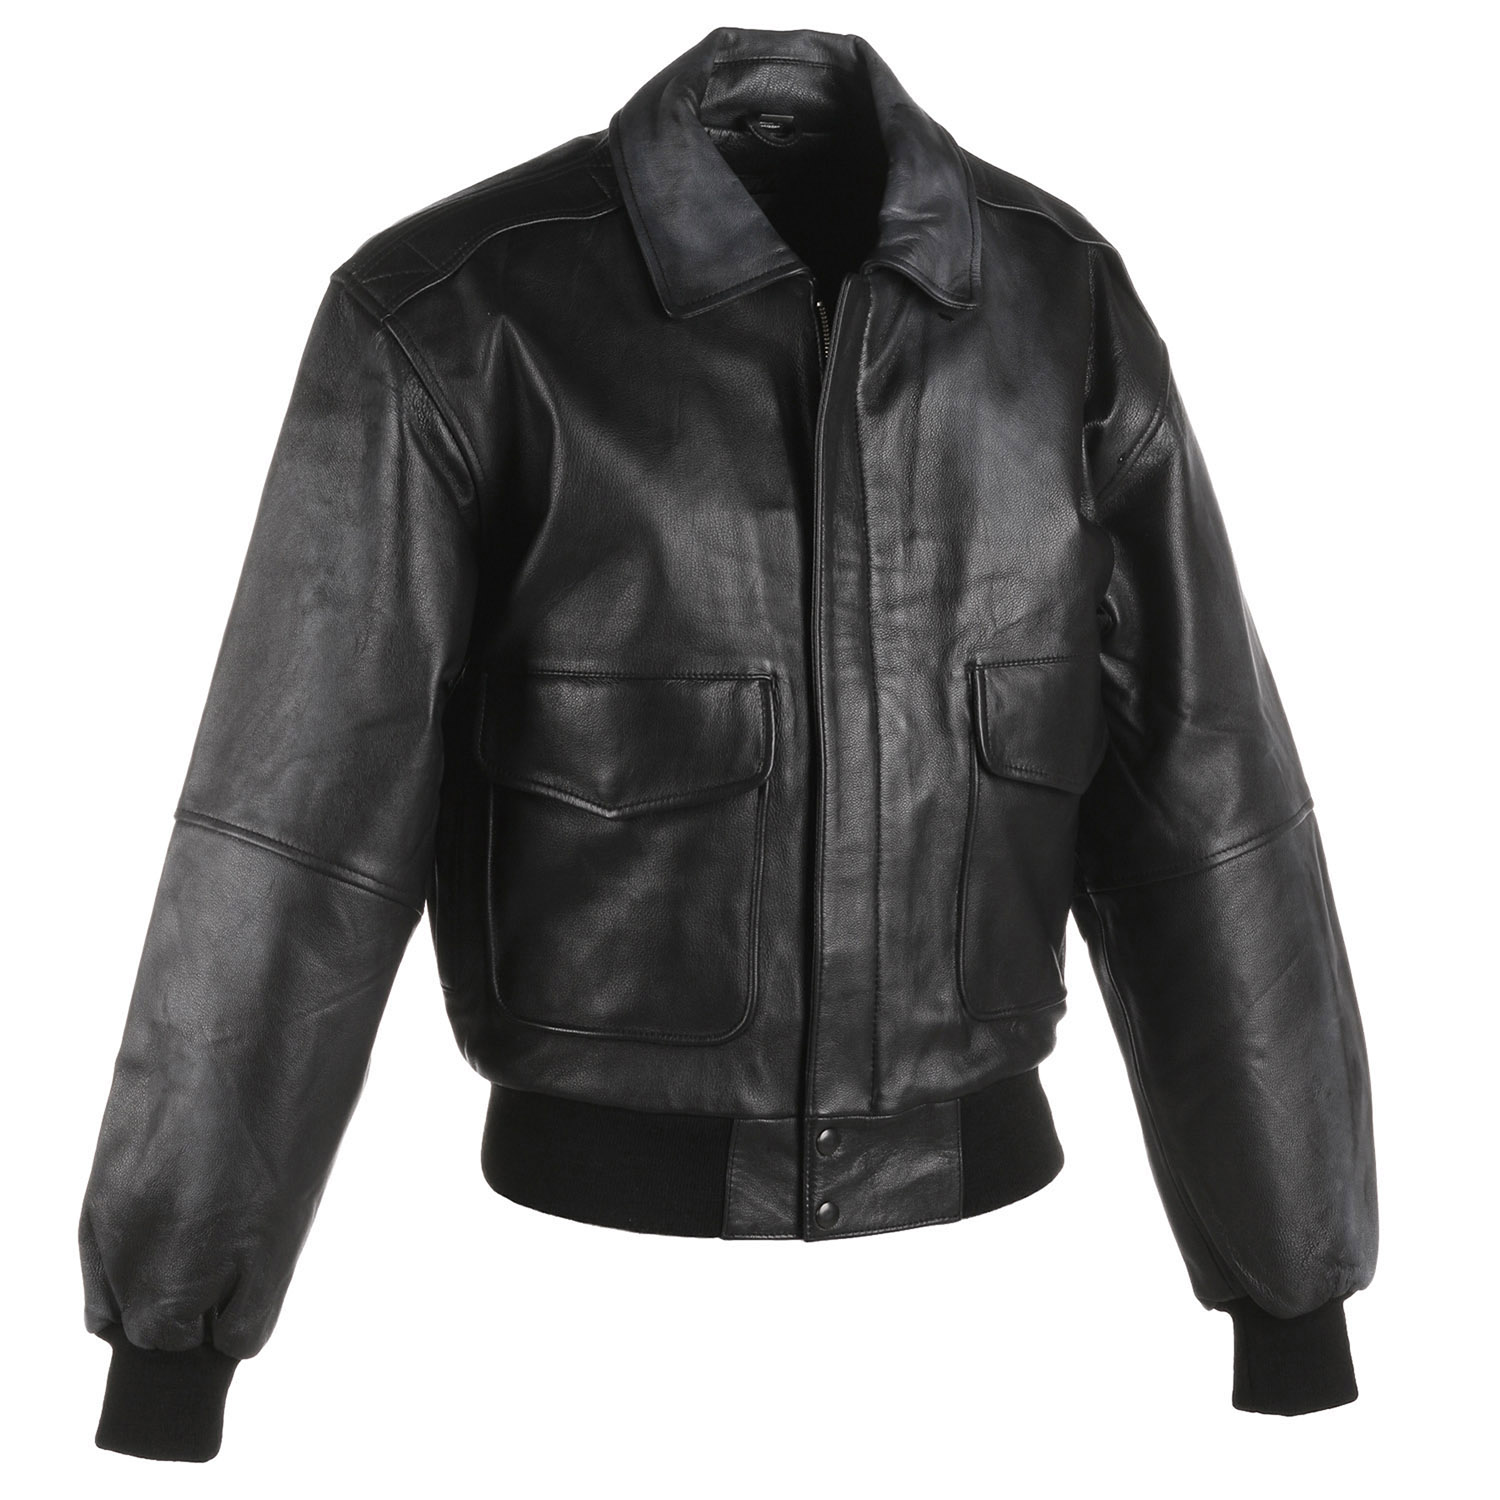 Taylor Leatherwear Goatskin Leather Bomber Jacket